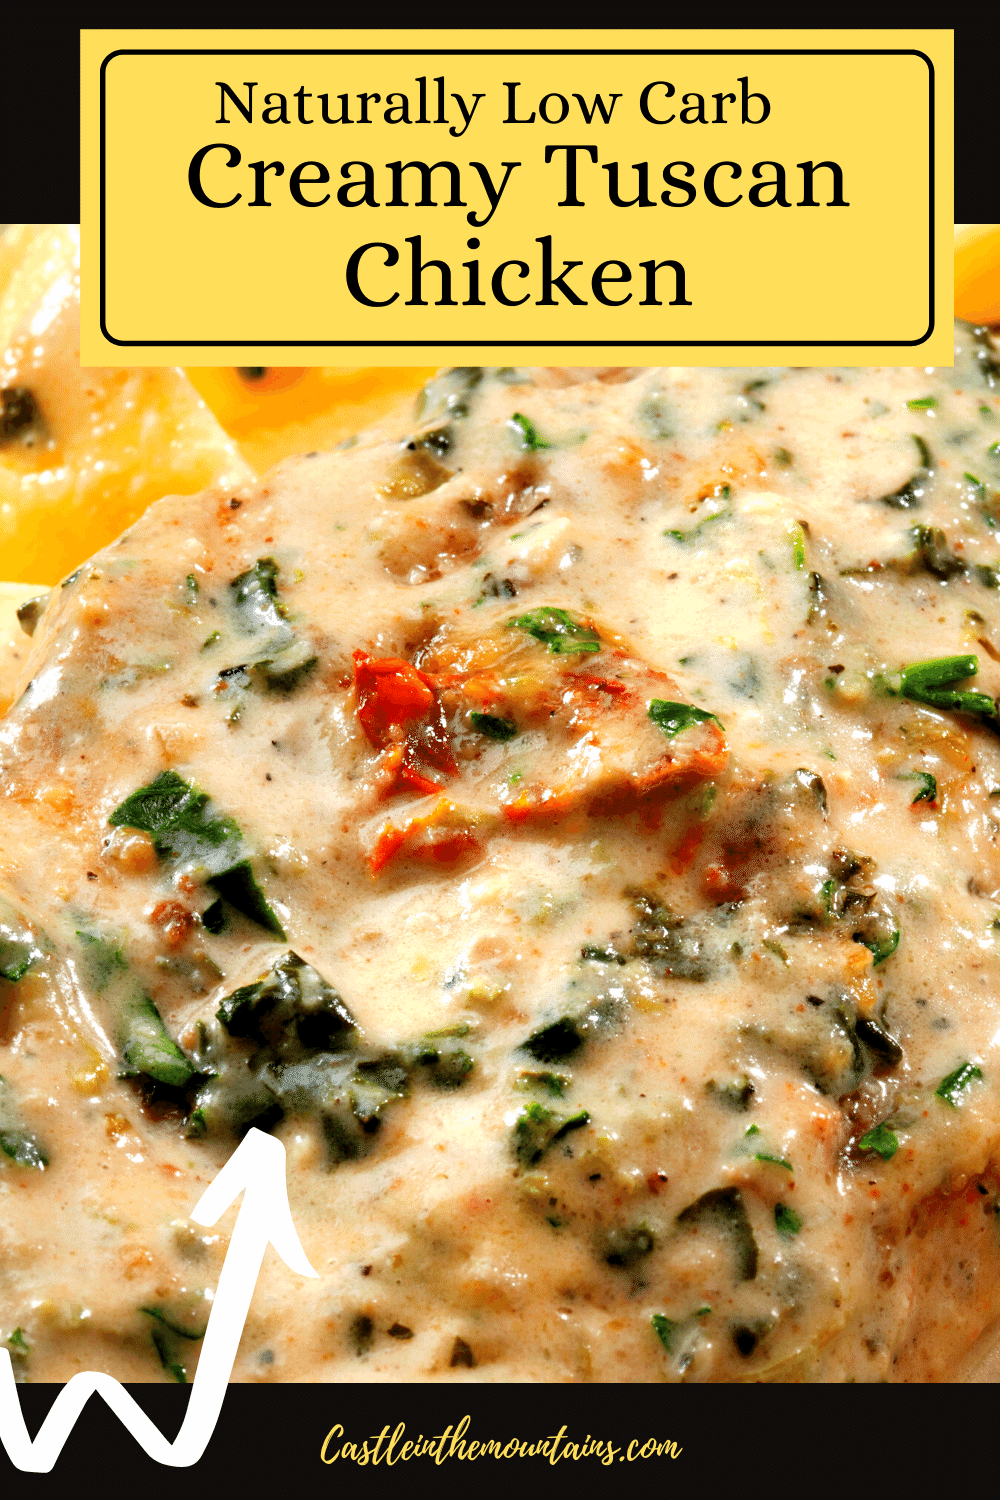 Creamy Tuscan Chicken - How to make Pollo Toscano!